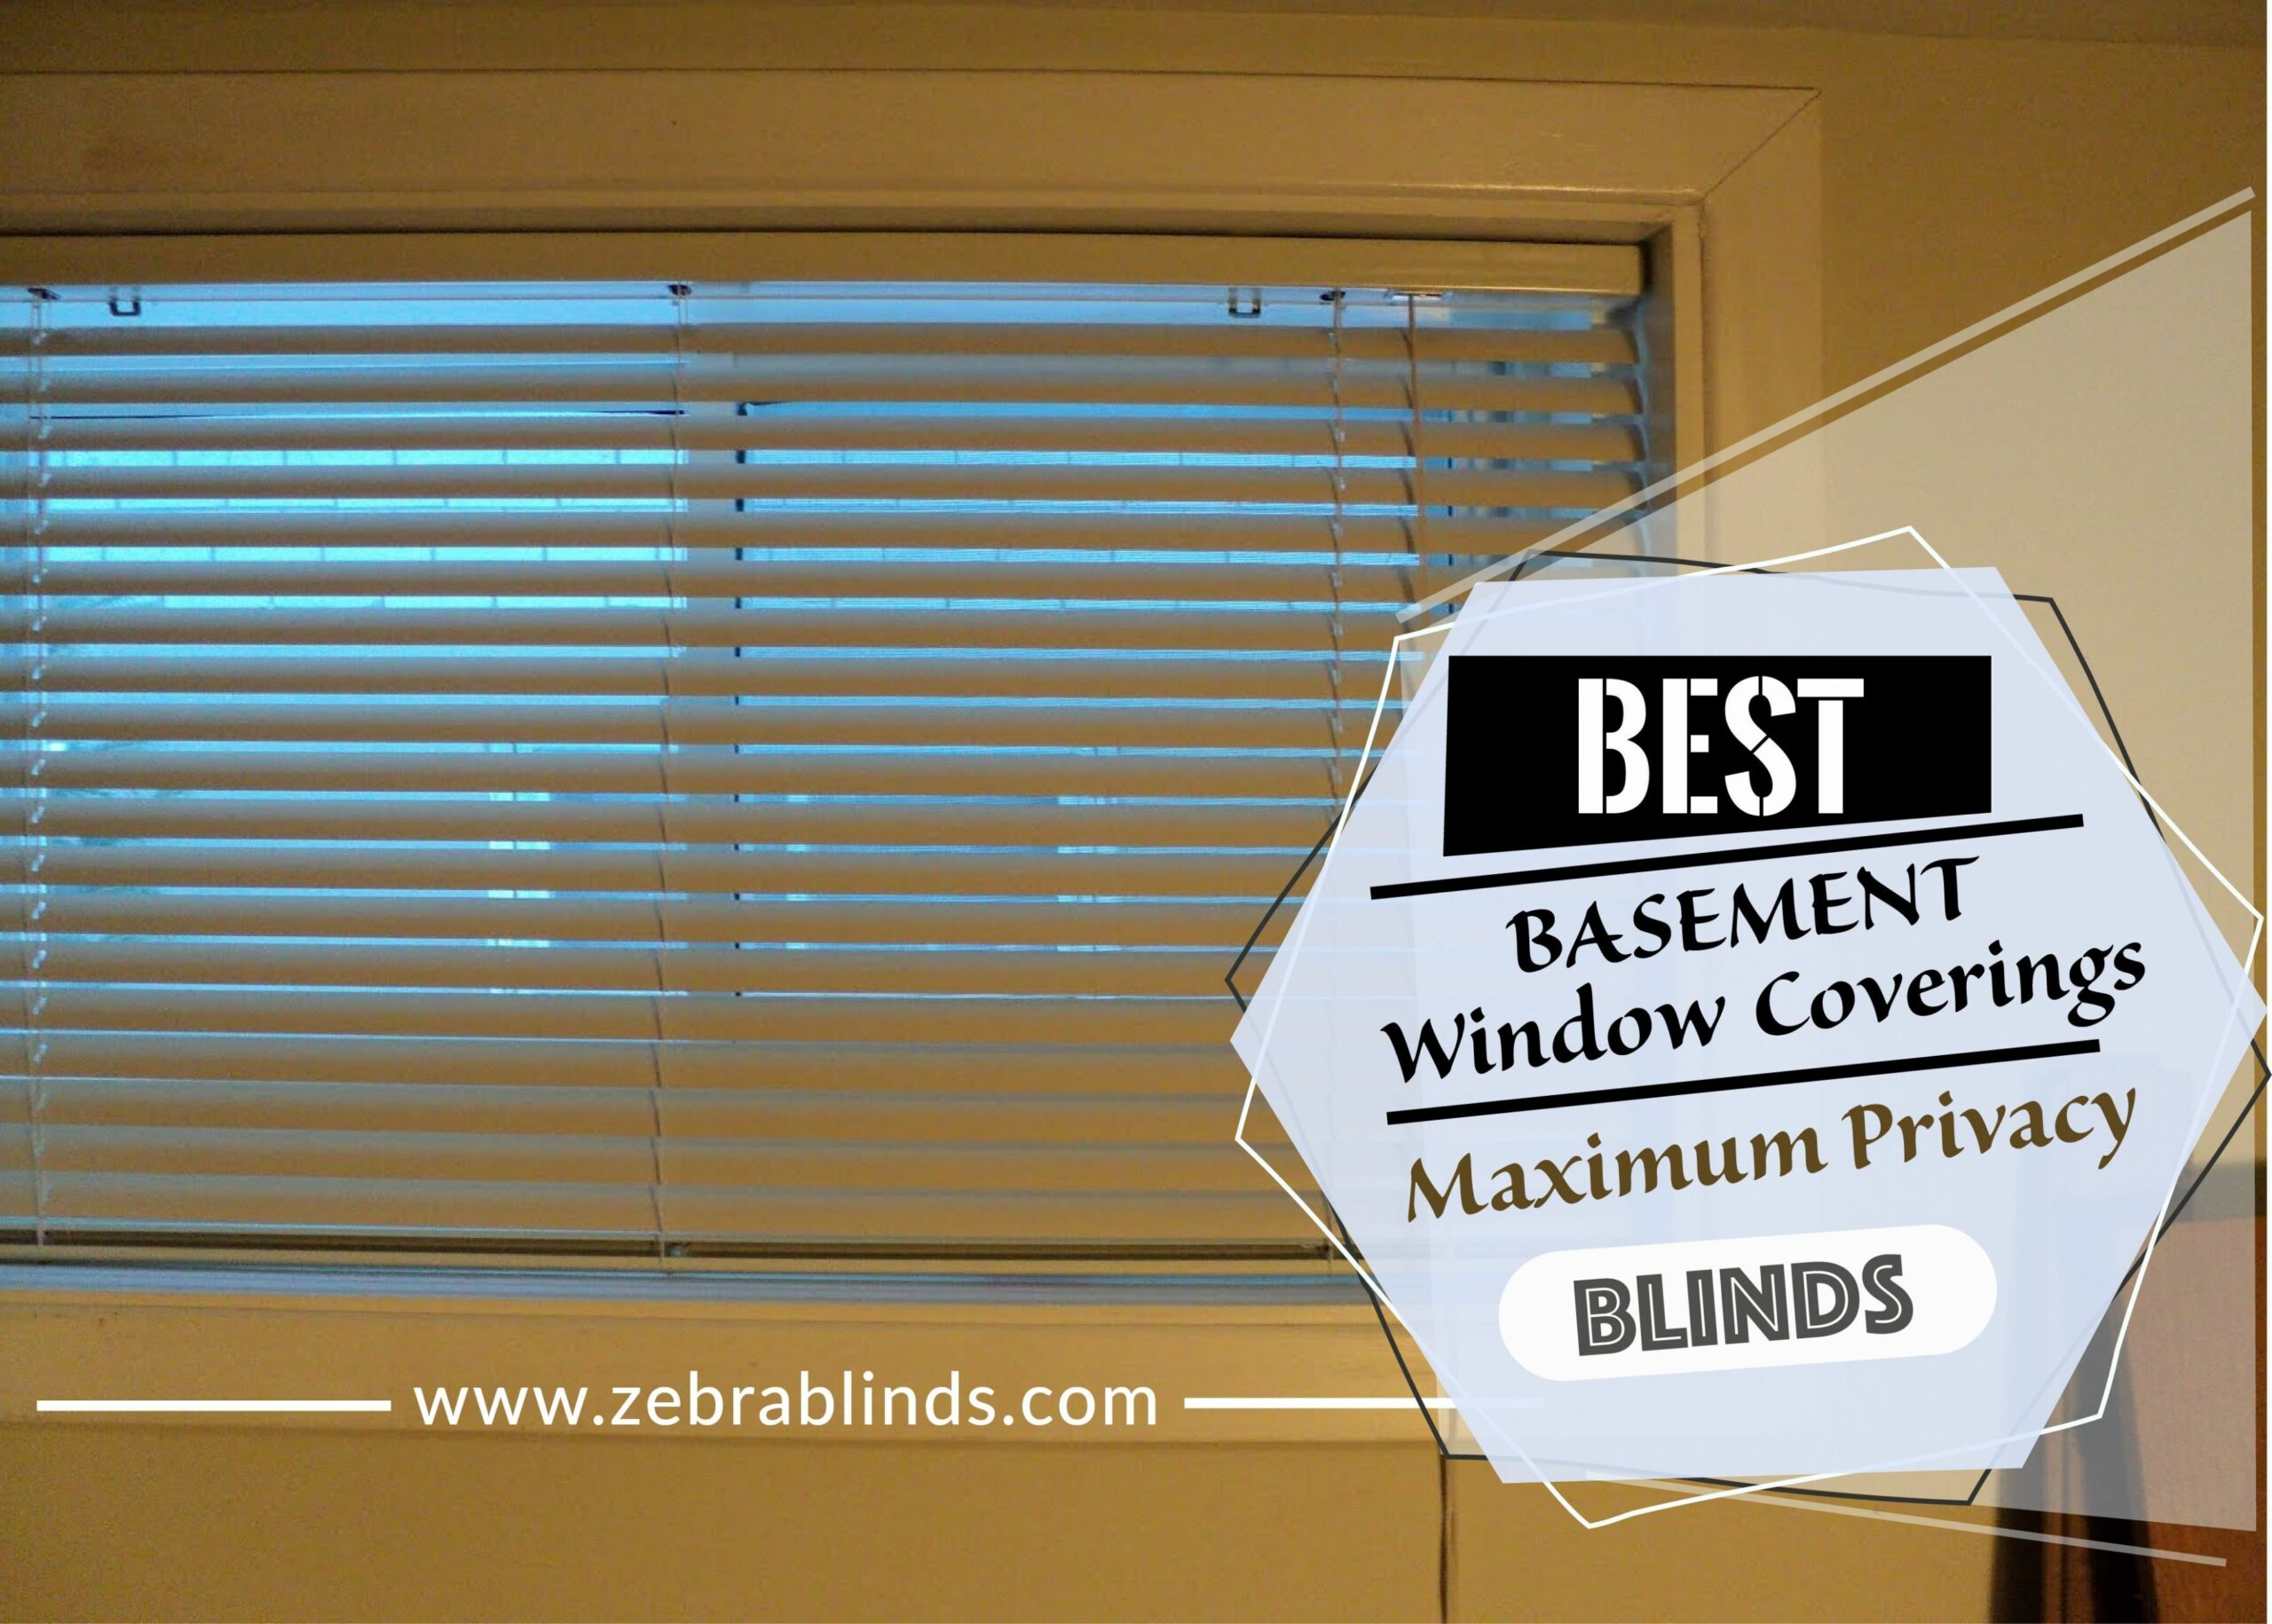 Top Basement Window Treatment Ideas - Maximum Privacy Blinds - window ideas for privacy